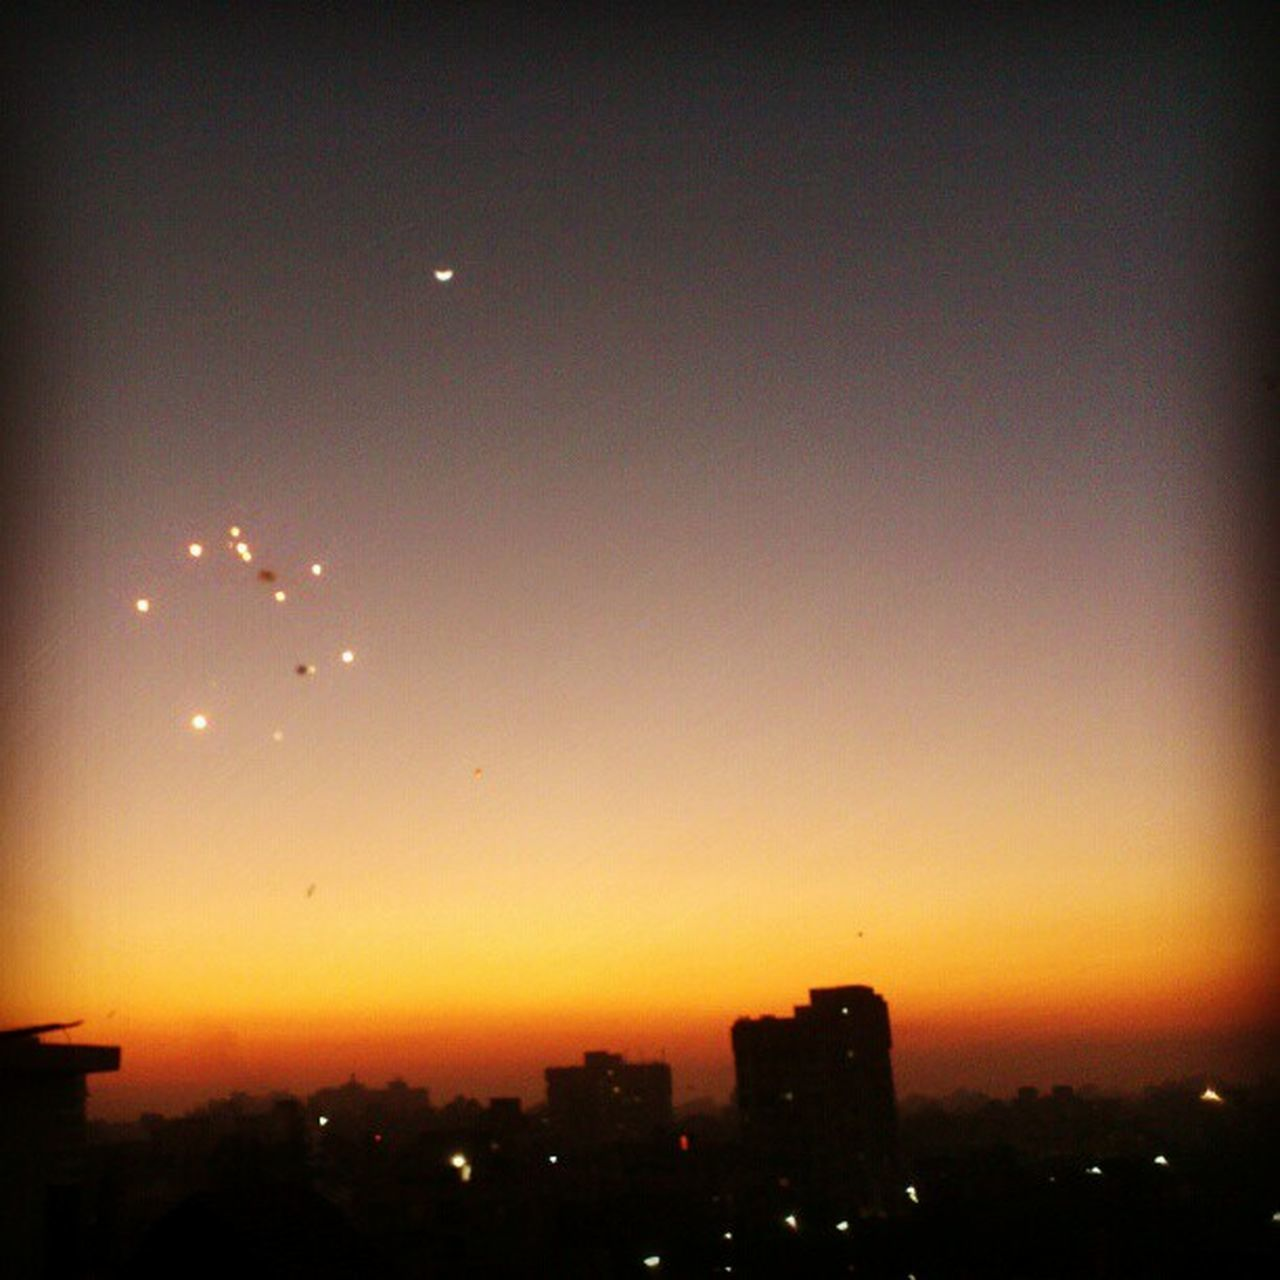 Evening Skycrackers Sky Clouds Buildings Colourful Orange Yellow Black Sunset Bright Instagood Instapics Picoftheday Photography Xperiaarc